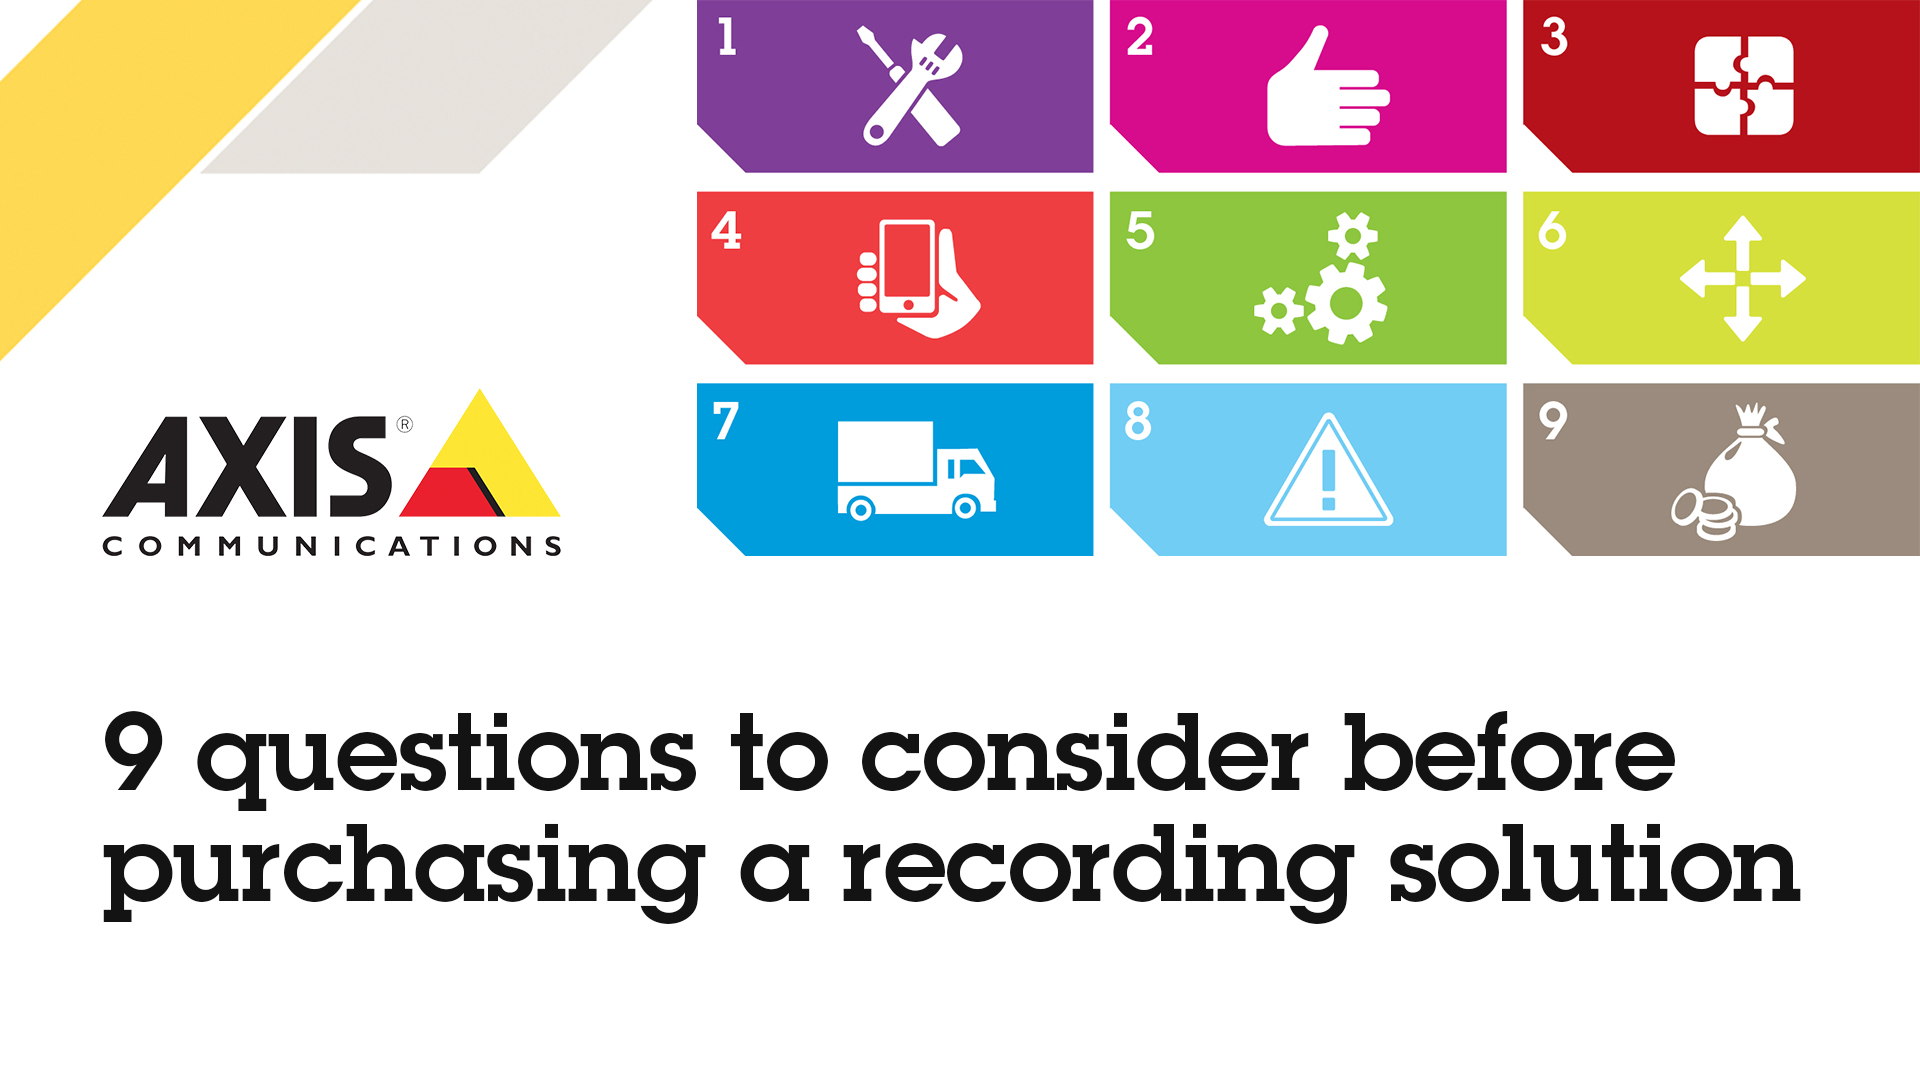 9 questions to consider before purchasing a recording solution